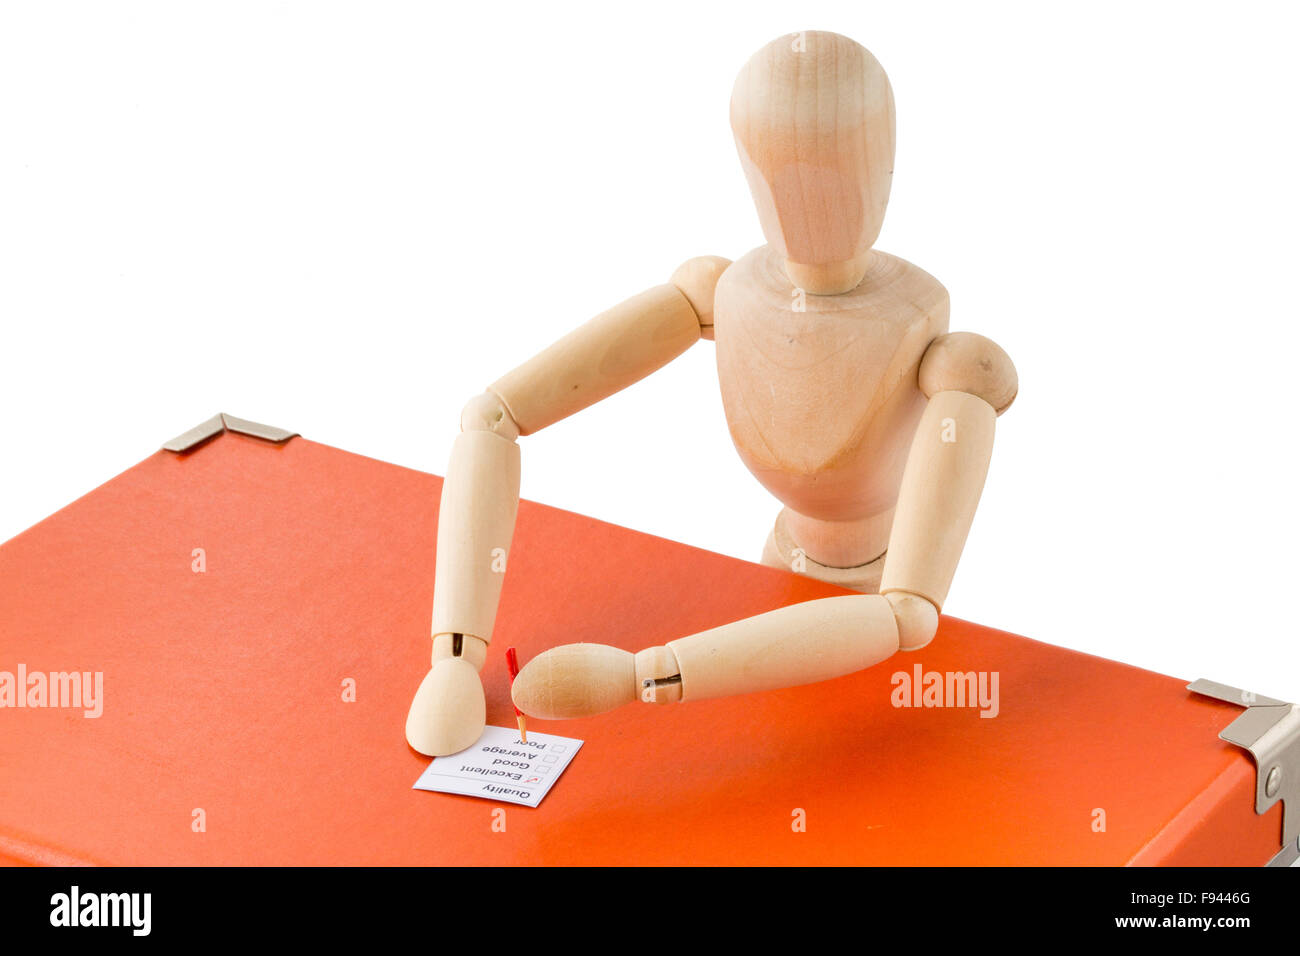 Puppet conducts quality check with checklist - Stock Image